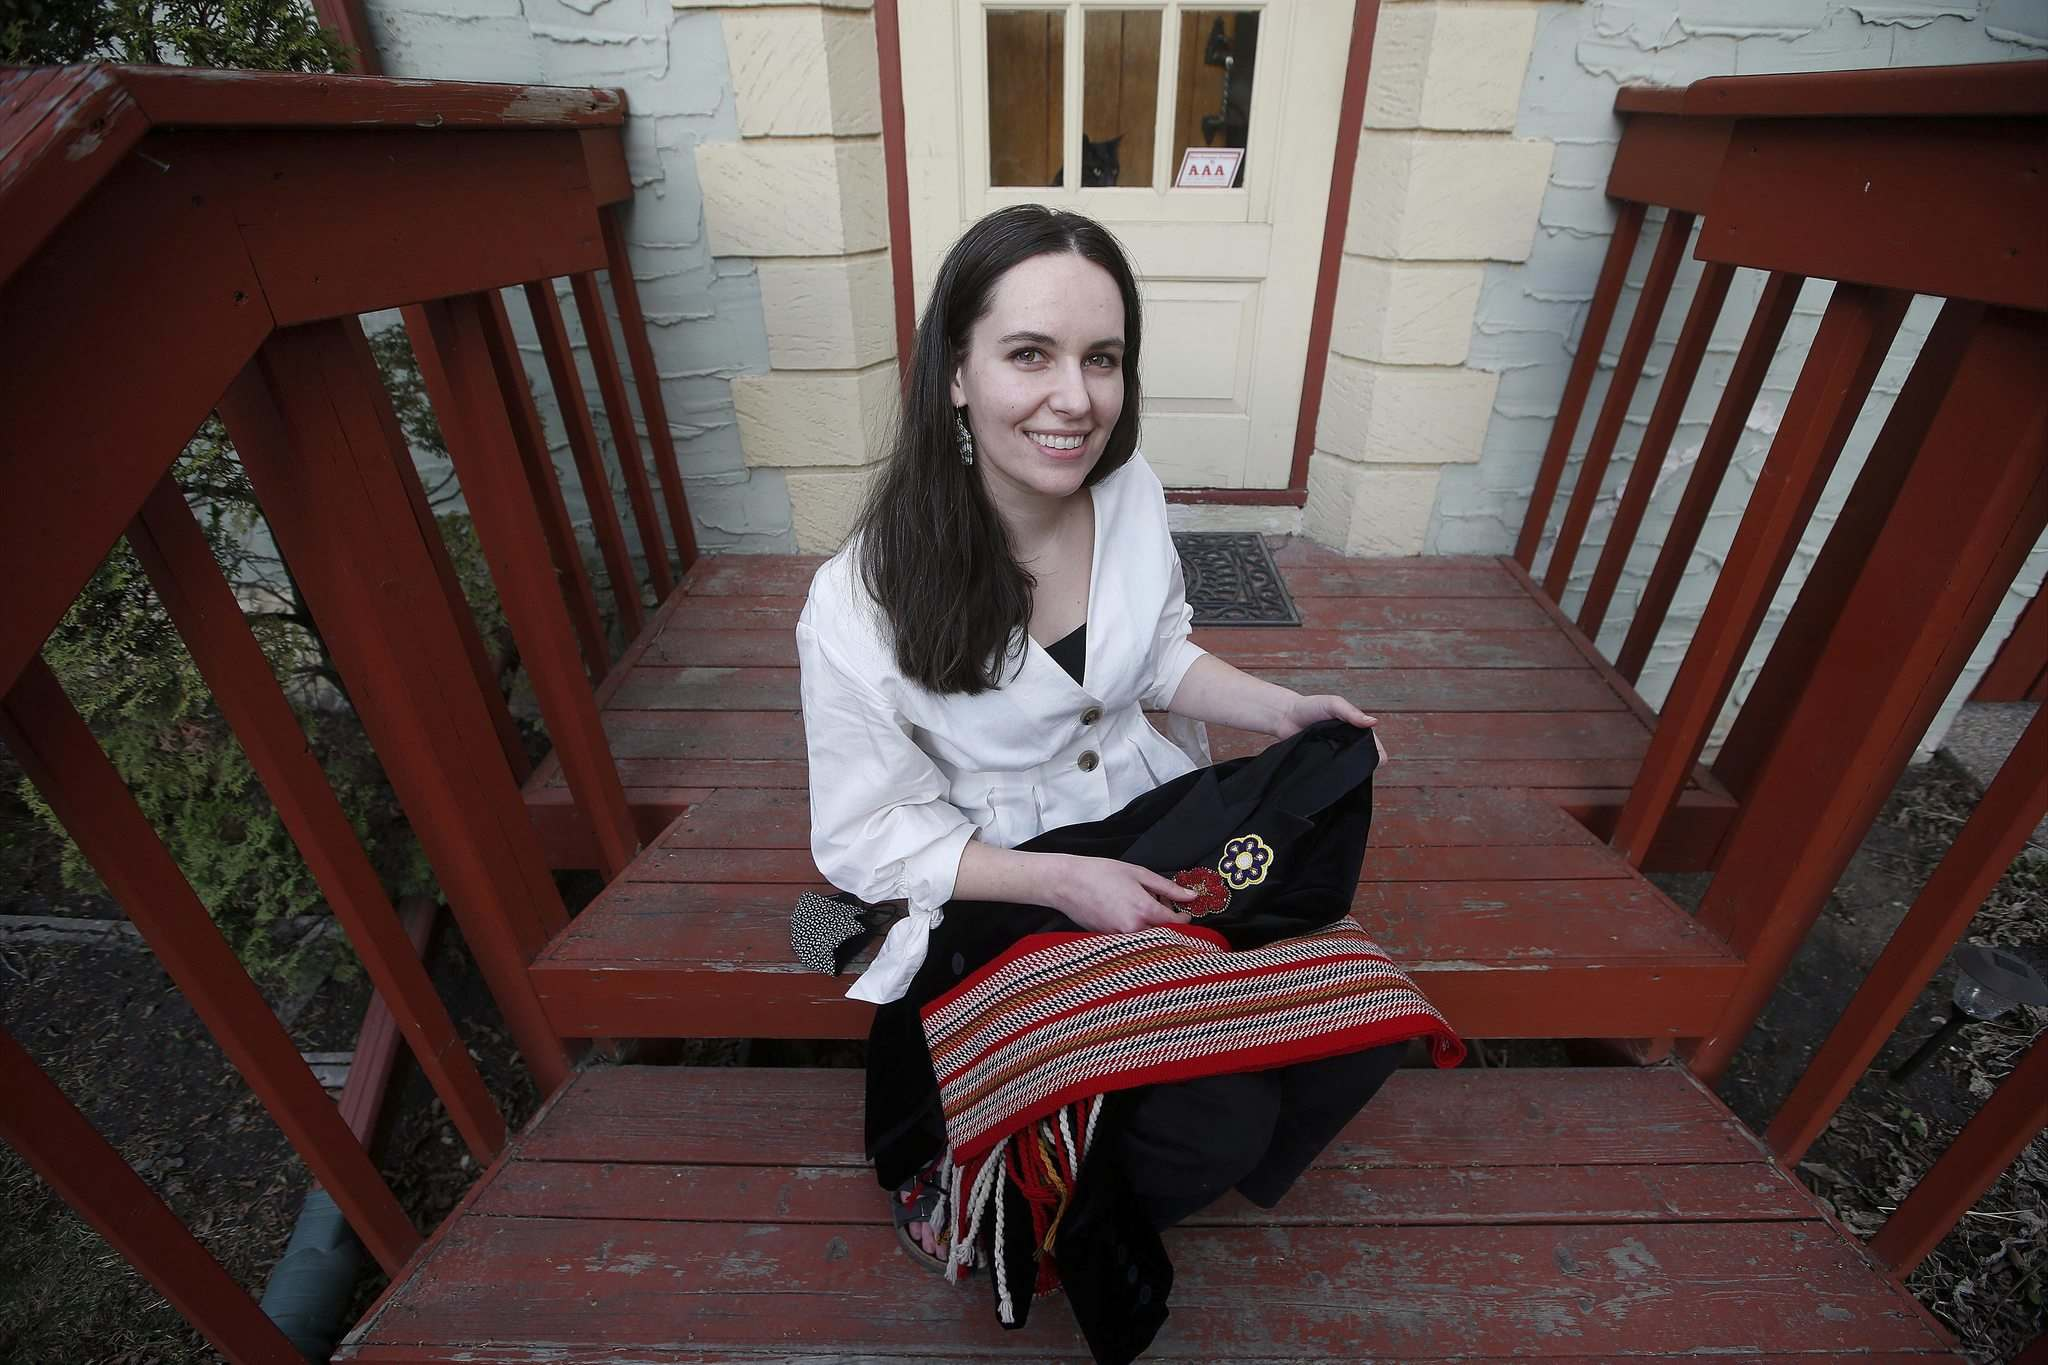 When Natalie Copps was looking for a pastime to wile away the pandemic, she turned to her Métis roots and took up beadworking. (John Woods / Winnipeg Free Press)